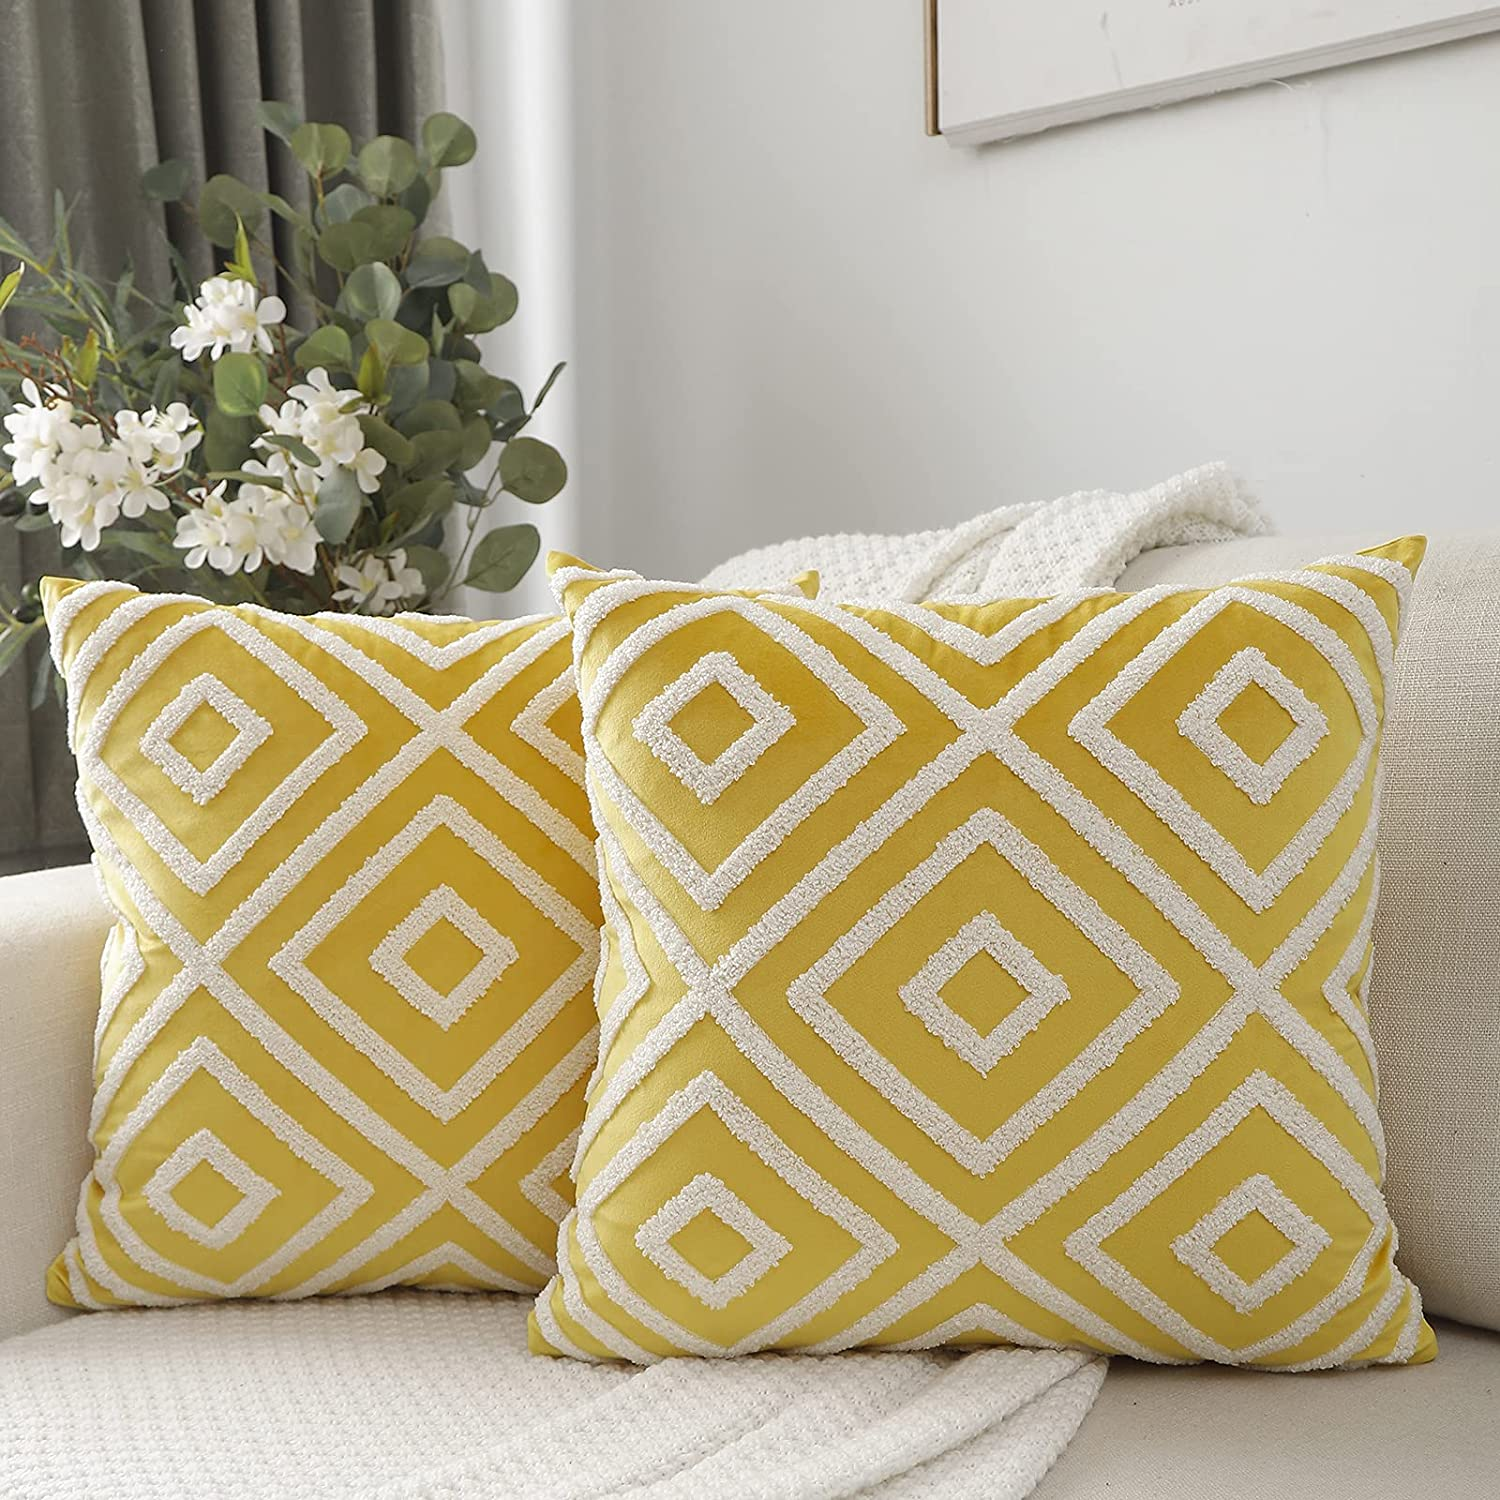 Vancl Outstanding Boho Tufted Decorative Yellow Pillow Ve Al sold out. Throw Covers 18x18